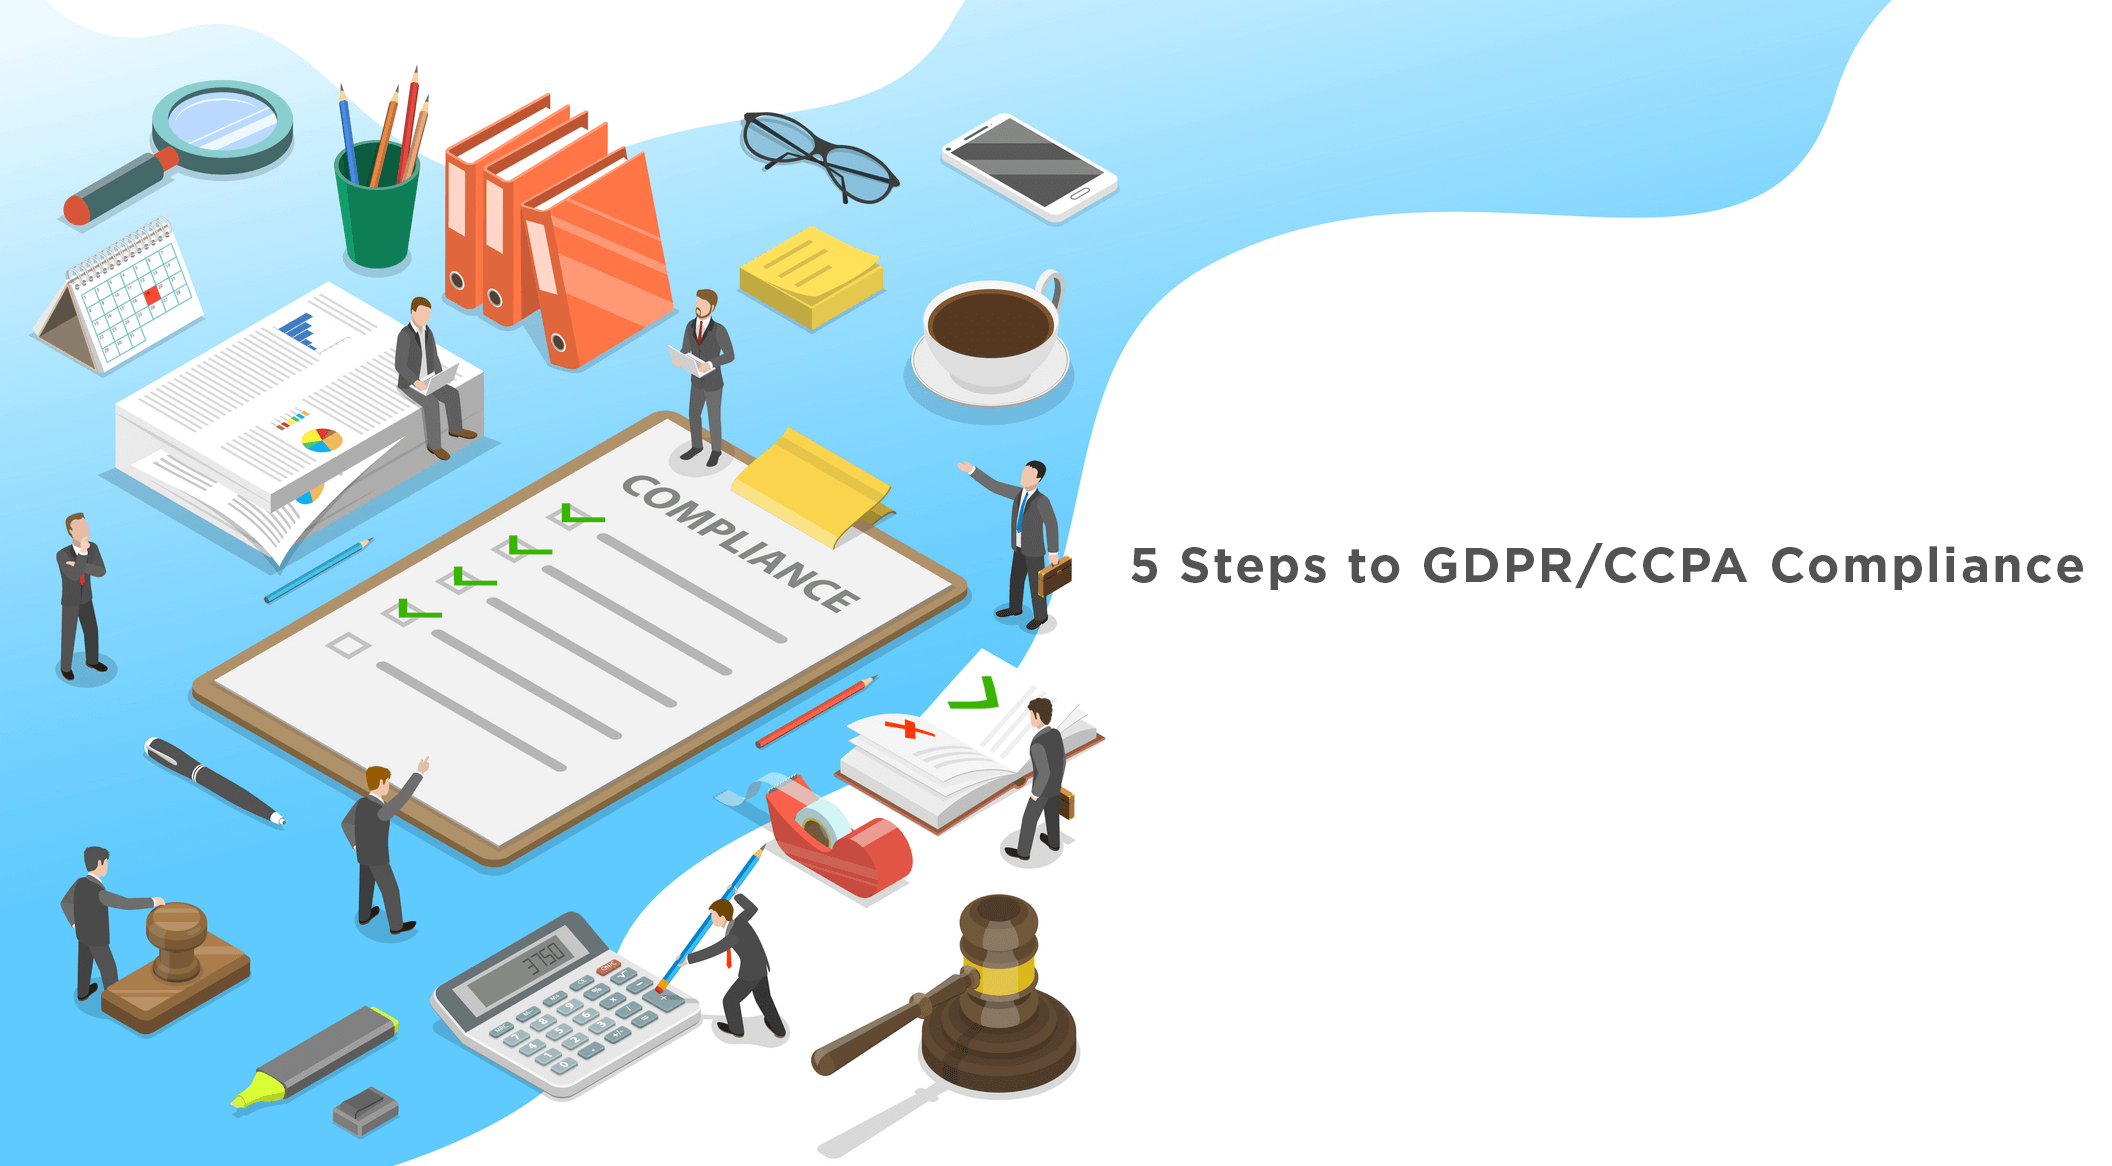 Using Strategic Data Governance to Manage GDPR CCPA Complexity